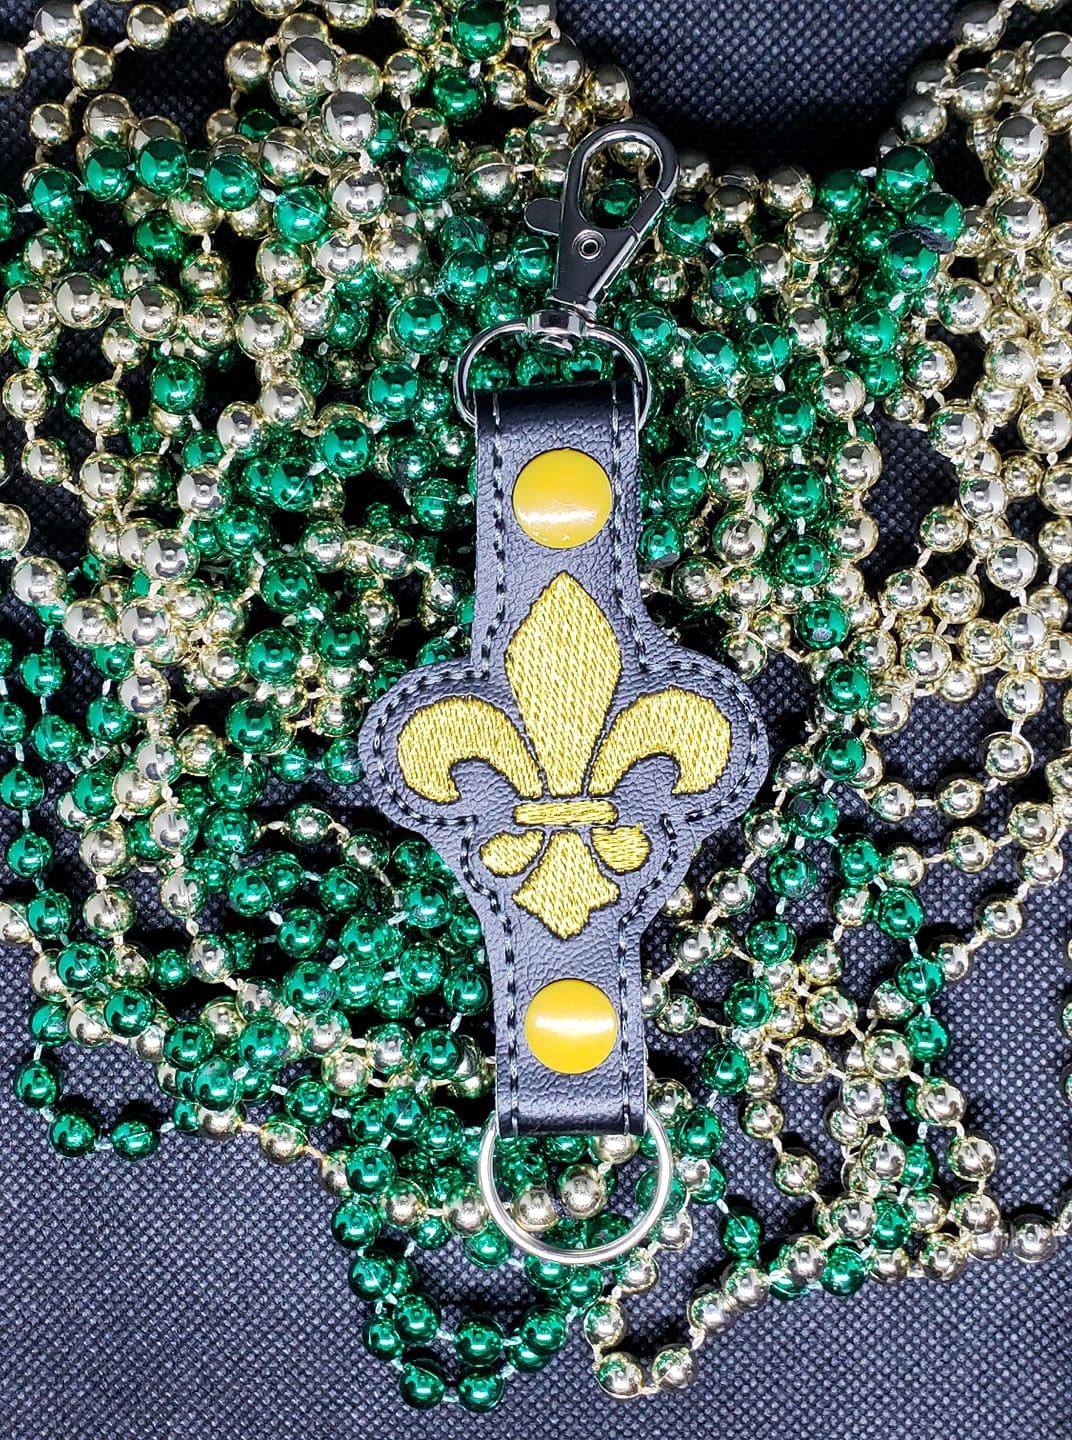 Fleur De Lis Water Bottle Holder Embroidery Design